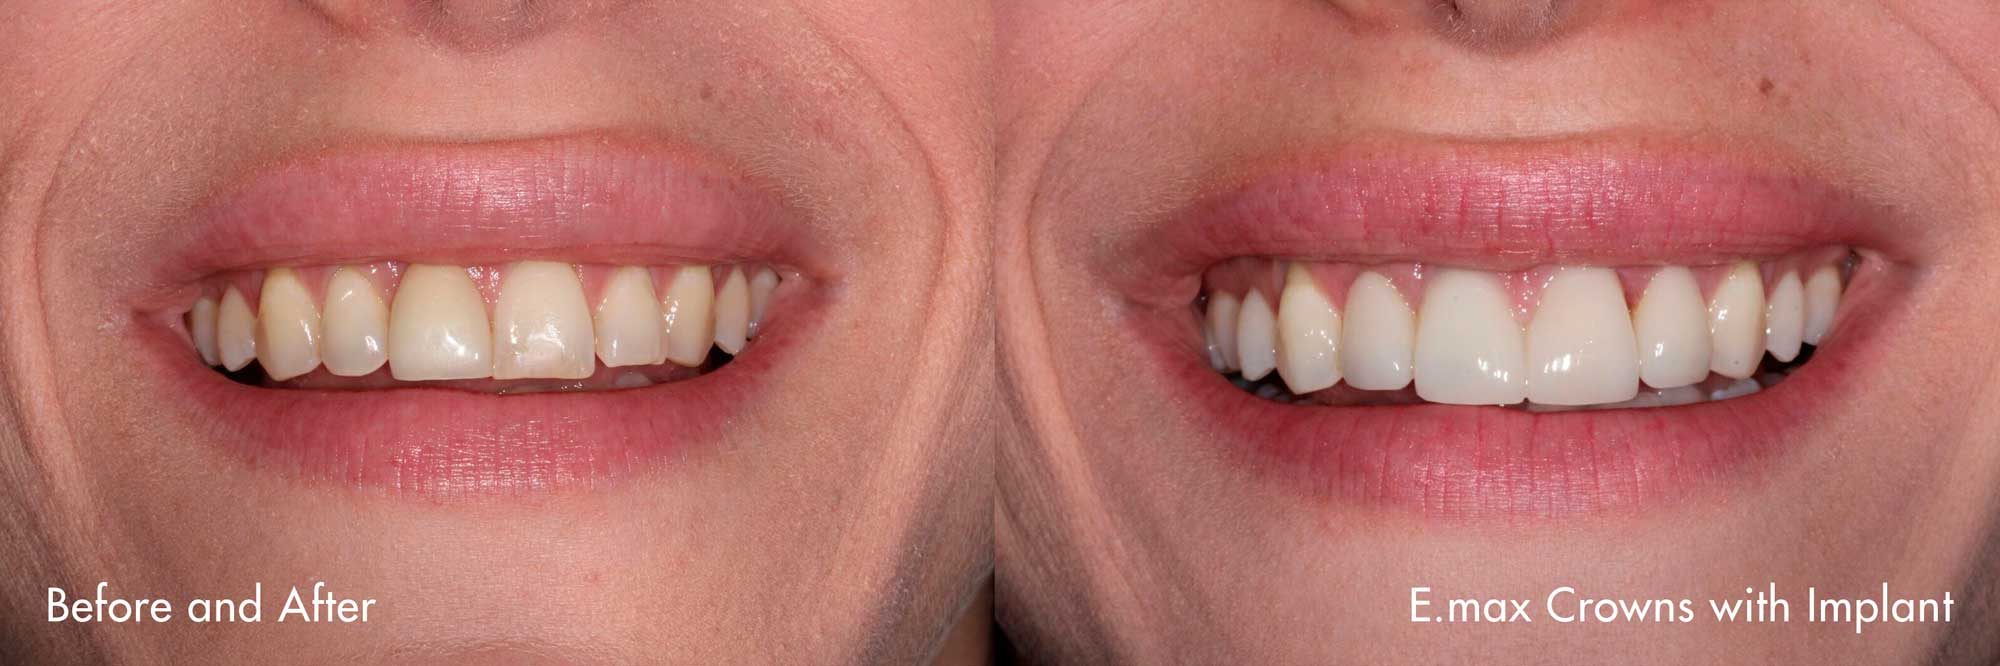 EmaxCrowns_WithImplant_Before+After.jpg